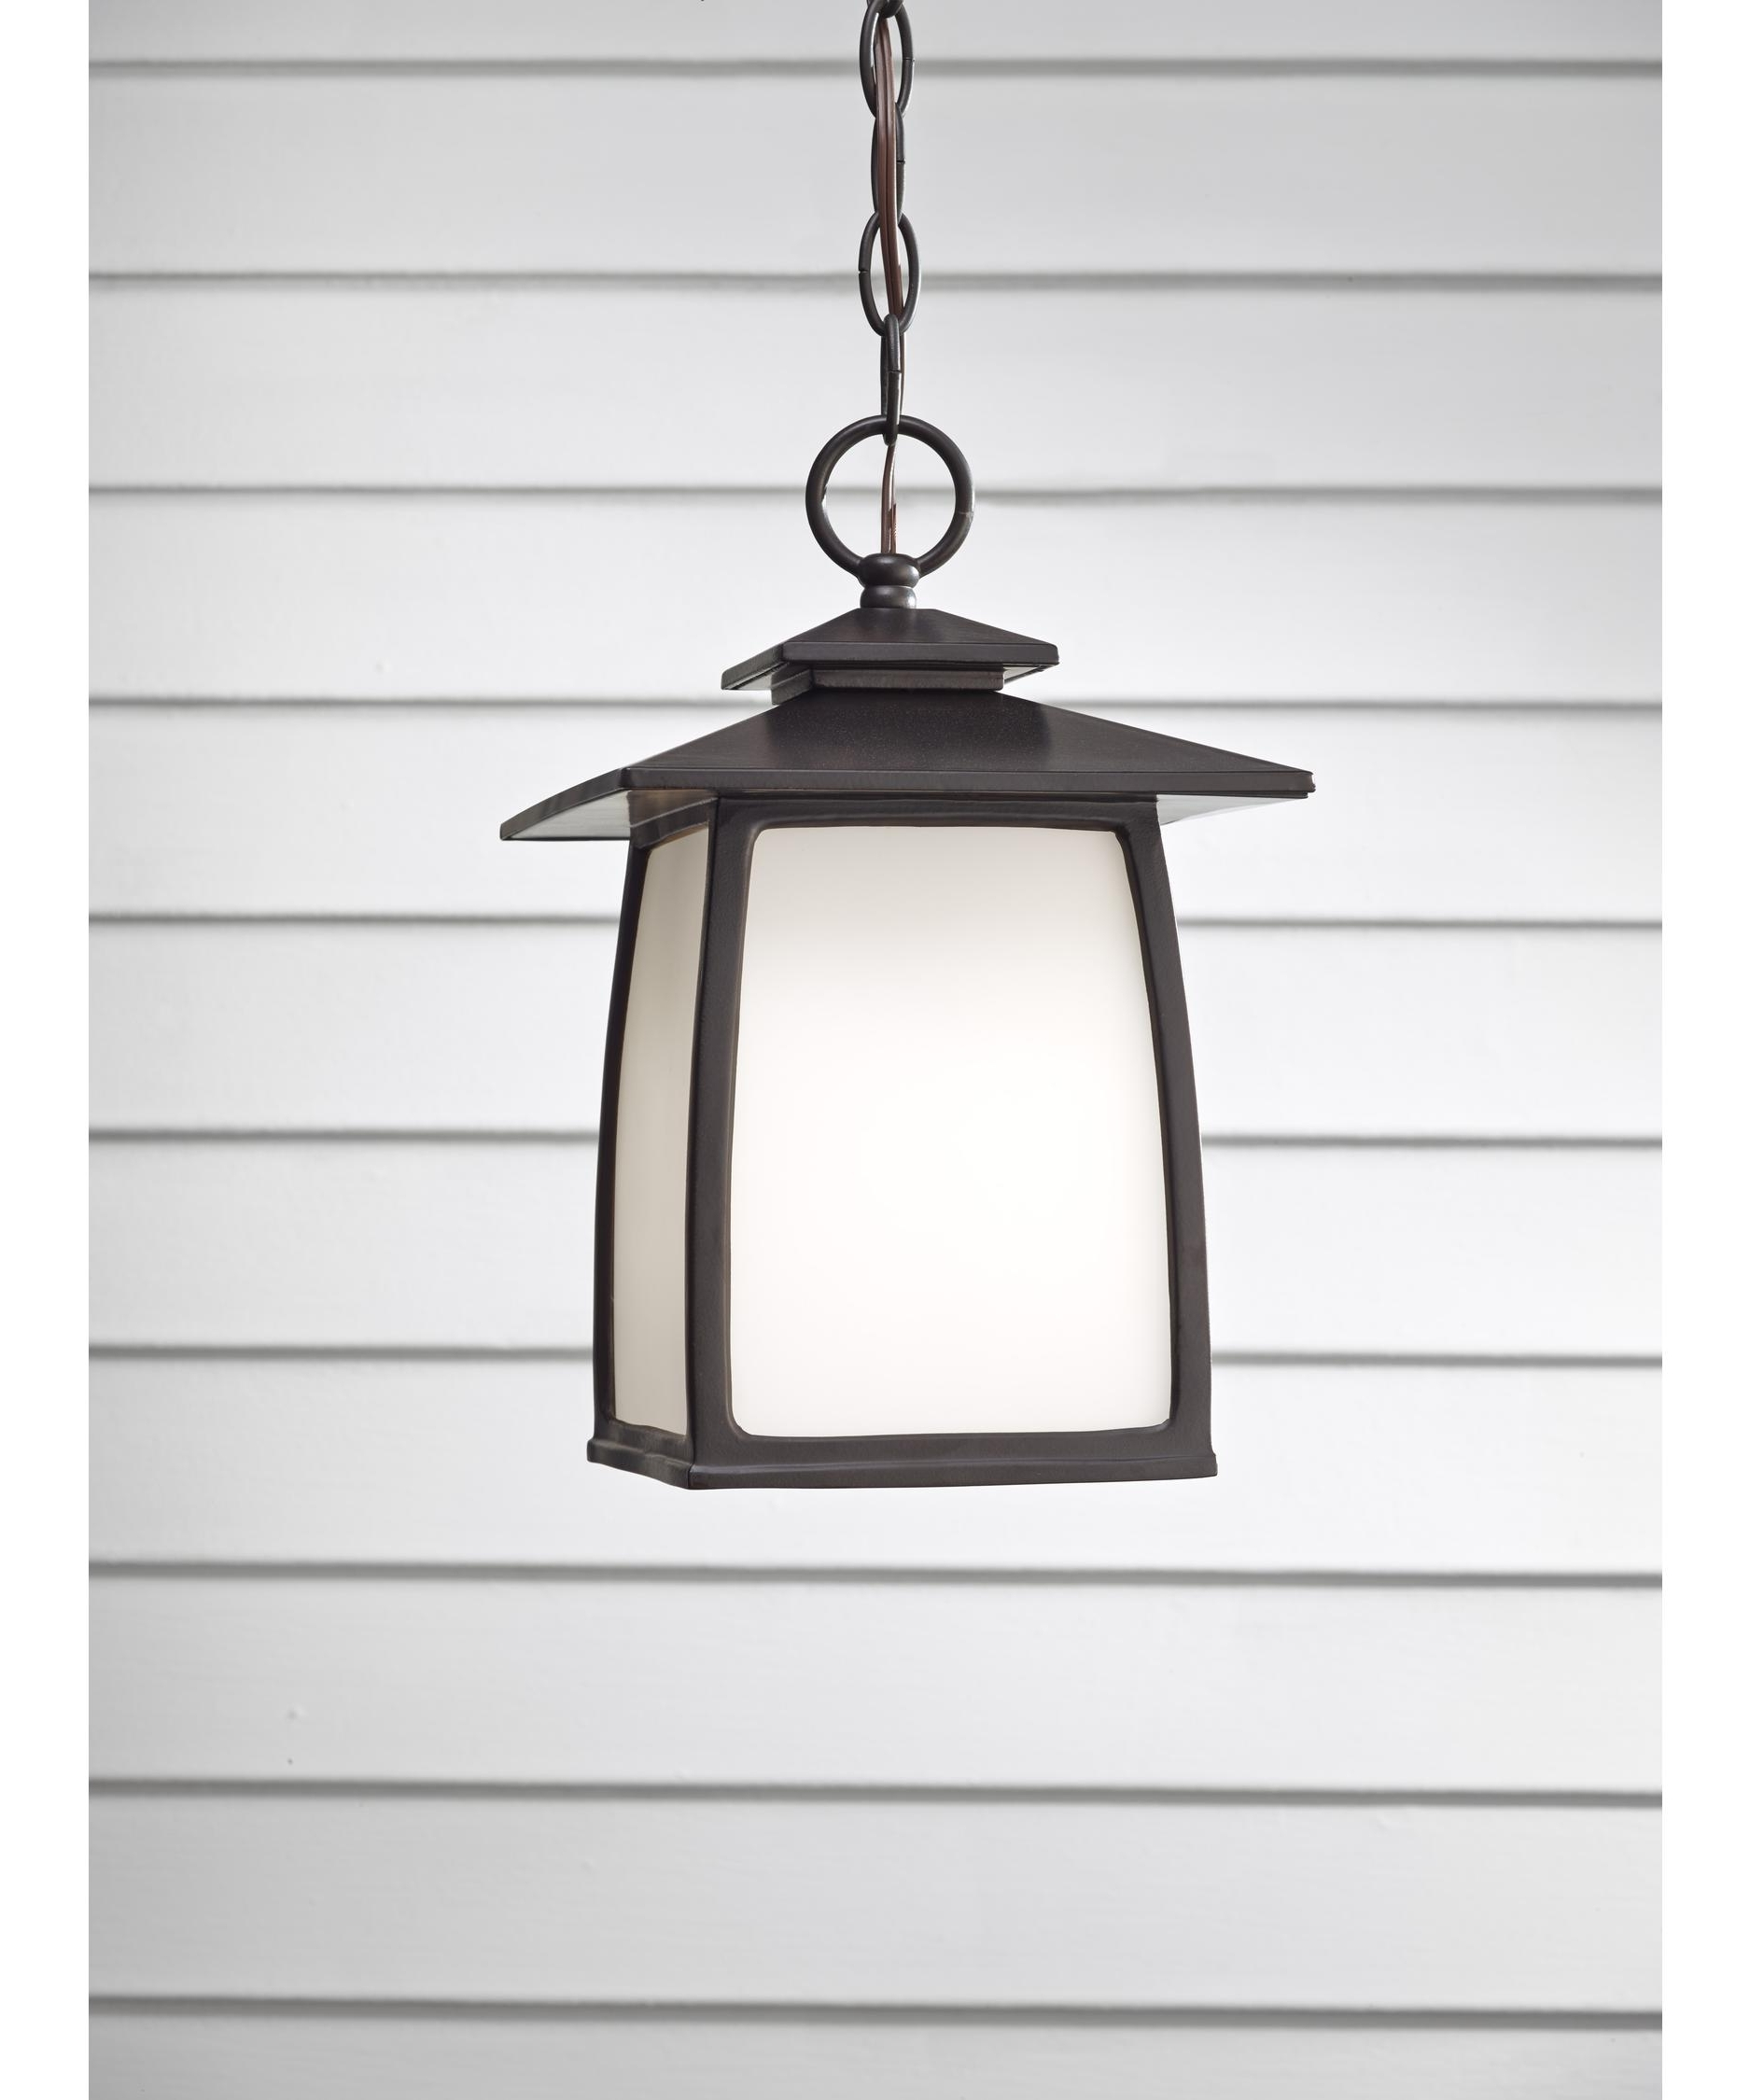 2019 Murray Feiss Ol8511 Wright House 8 Inch Wide 1 Light Outdoor Hanging In Outdoor Hanging Orb Lights (View 19 of 20)